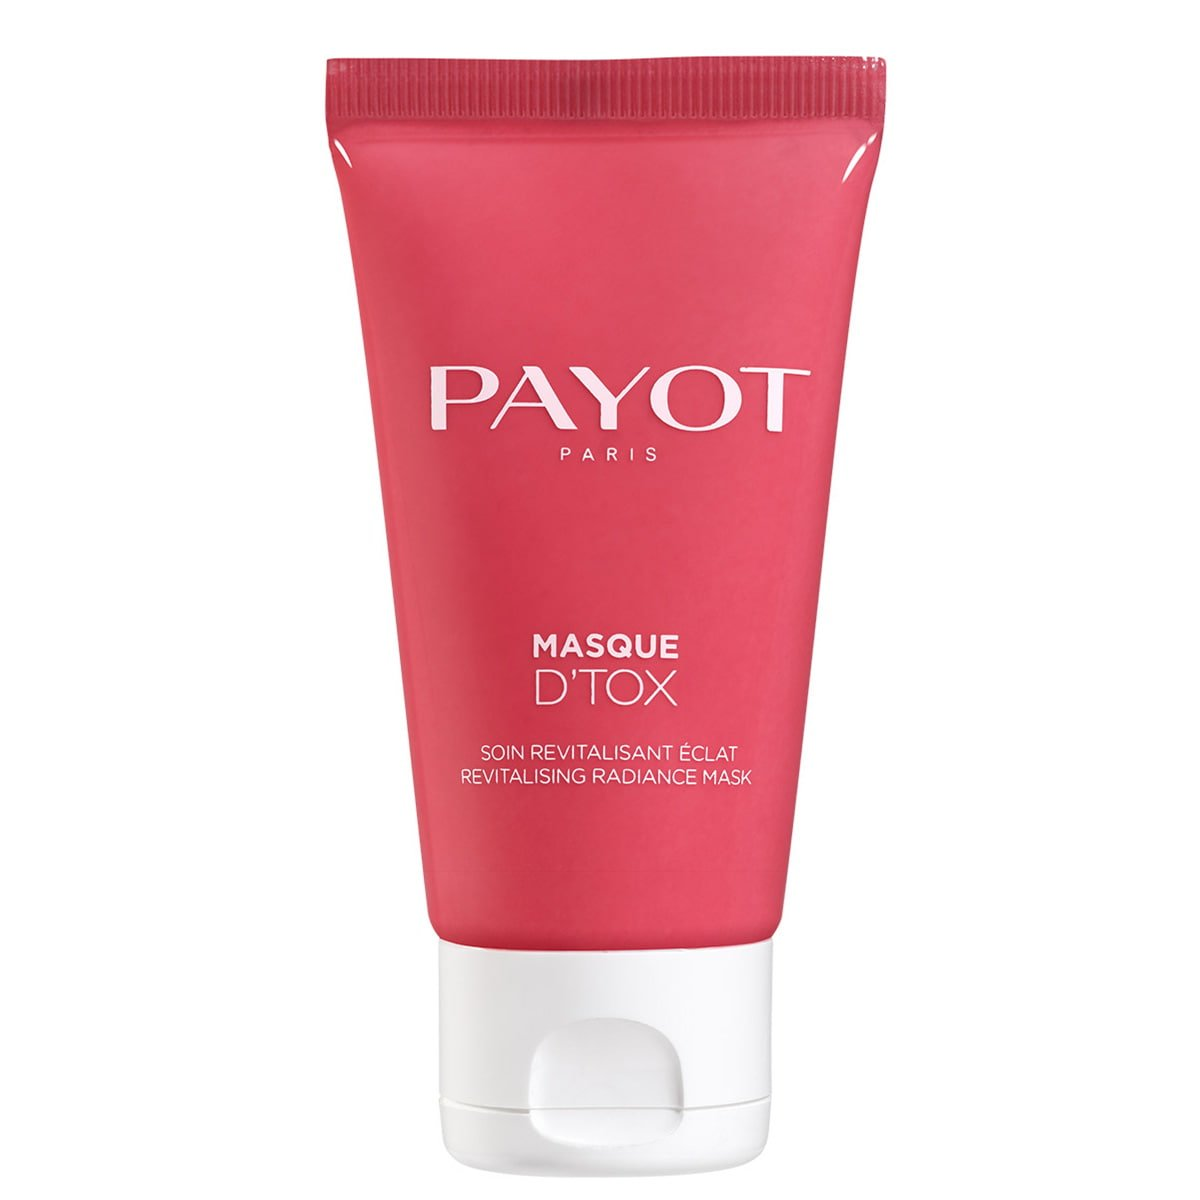 Payot - Masque D'Tox - Soin revitalisant éclat